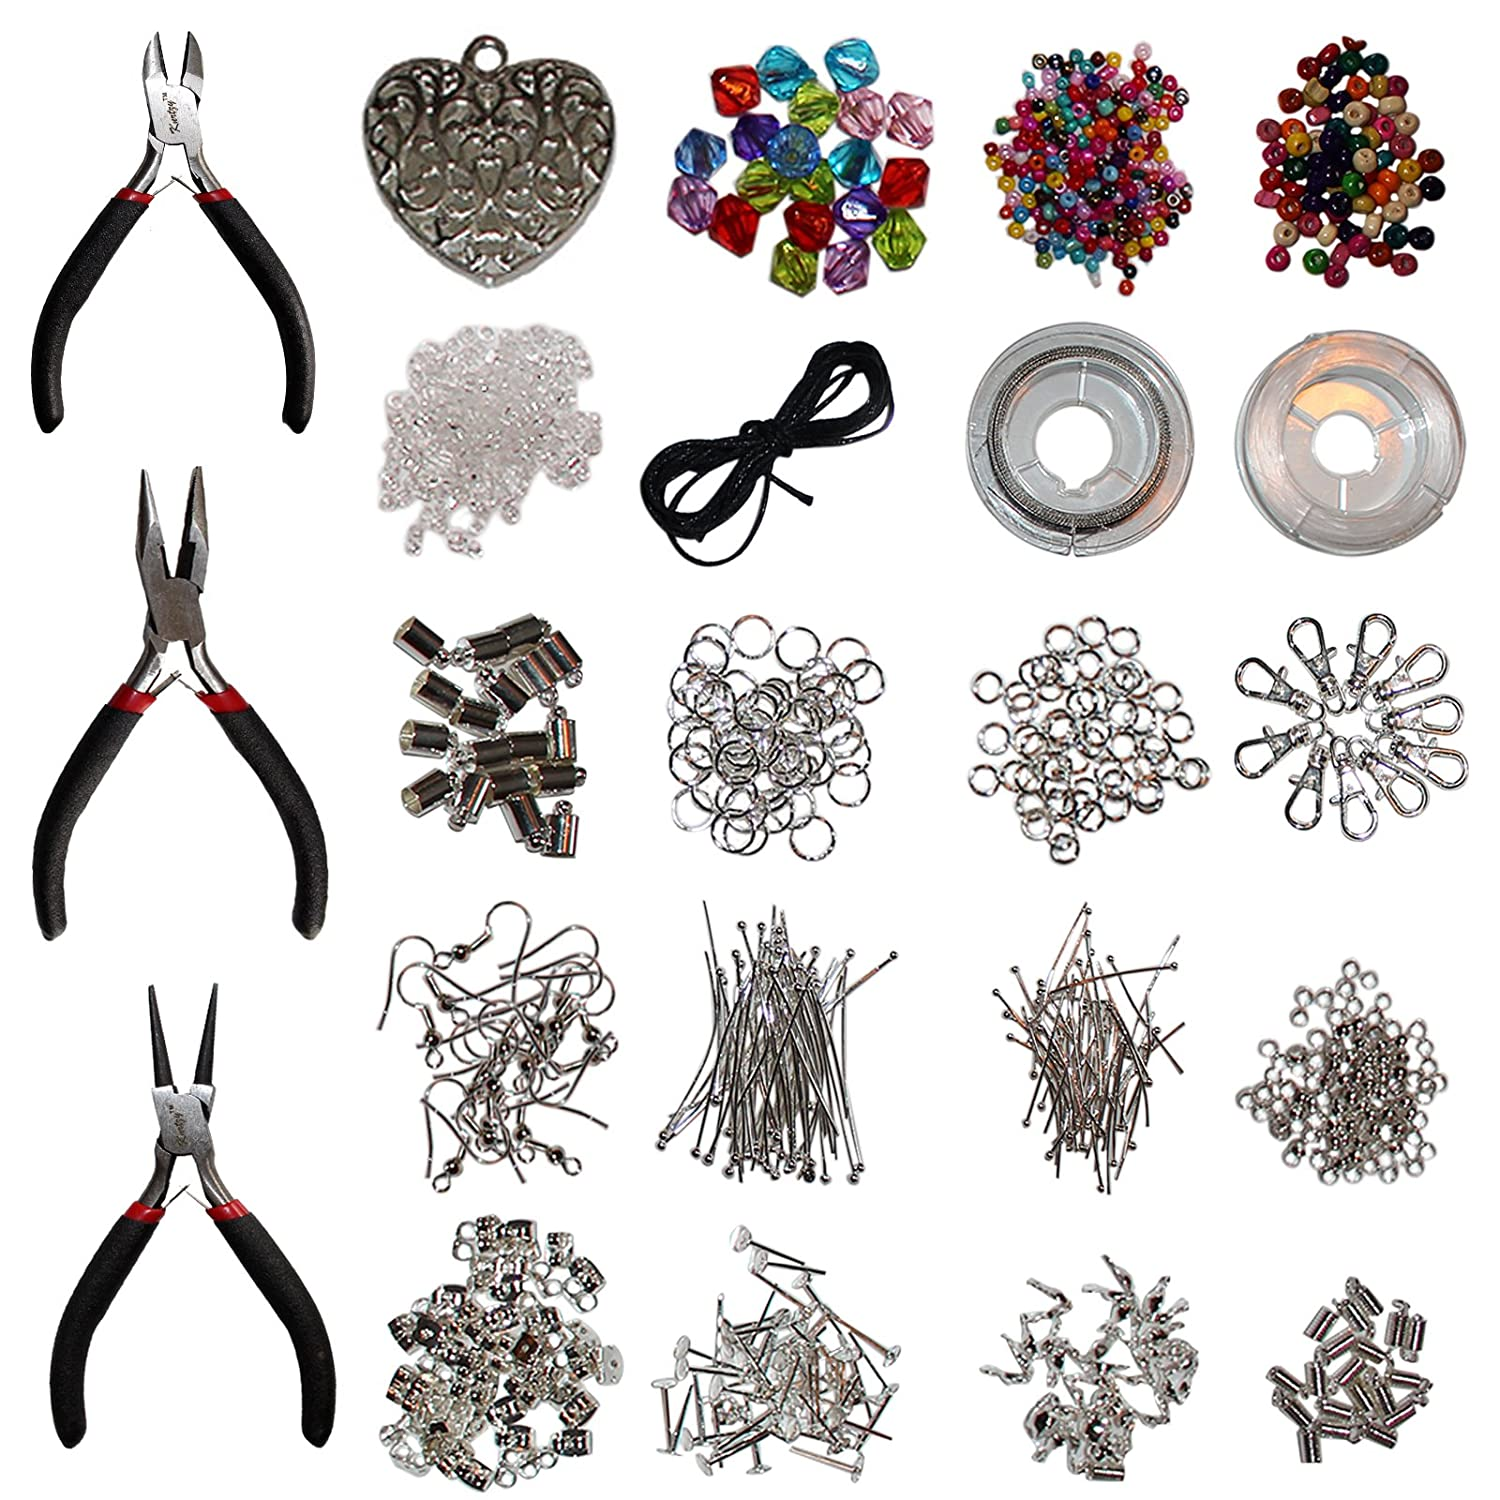 Kurtzy 1000-Piece Jewelry Making Kit